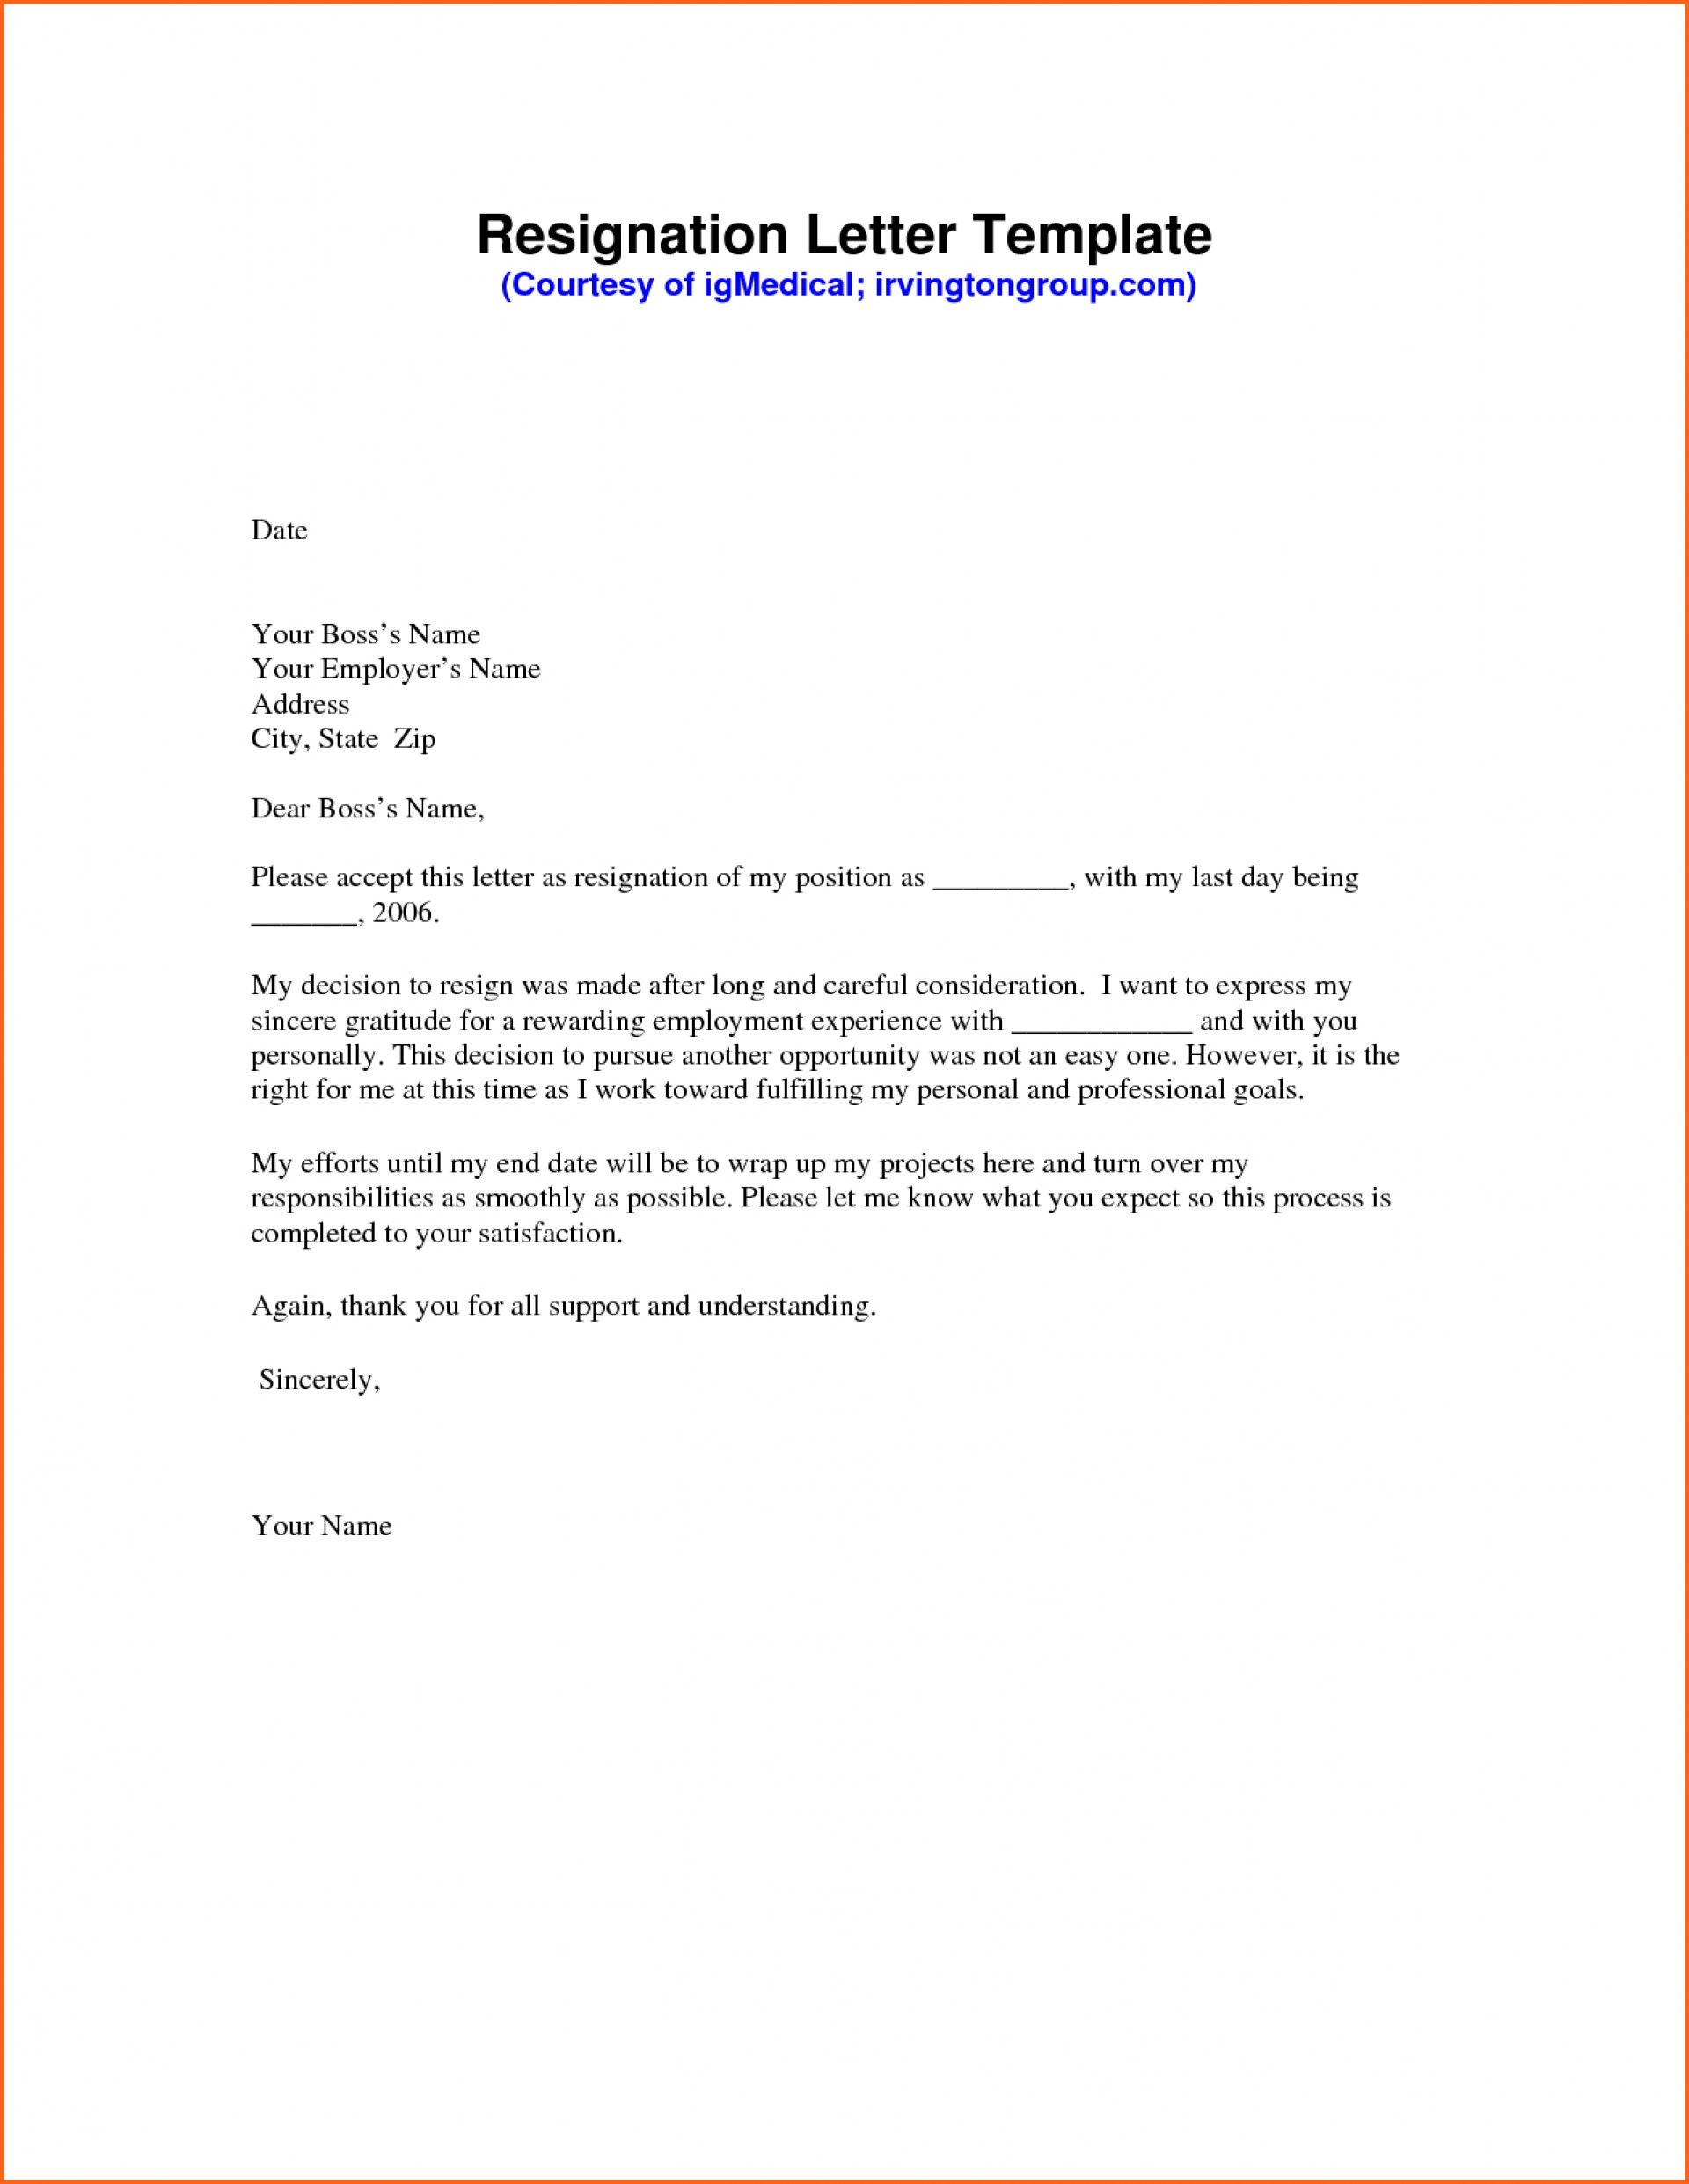 Sample Teacher Resignation Letter Before End Of Contract from www.addictionary.org